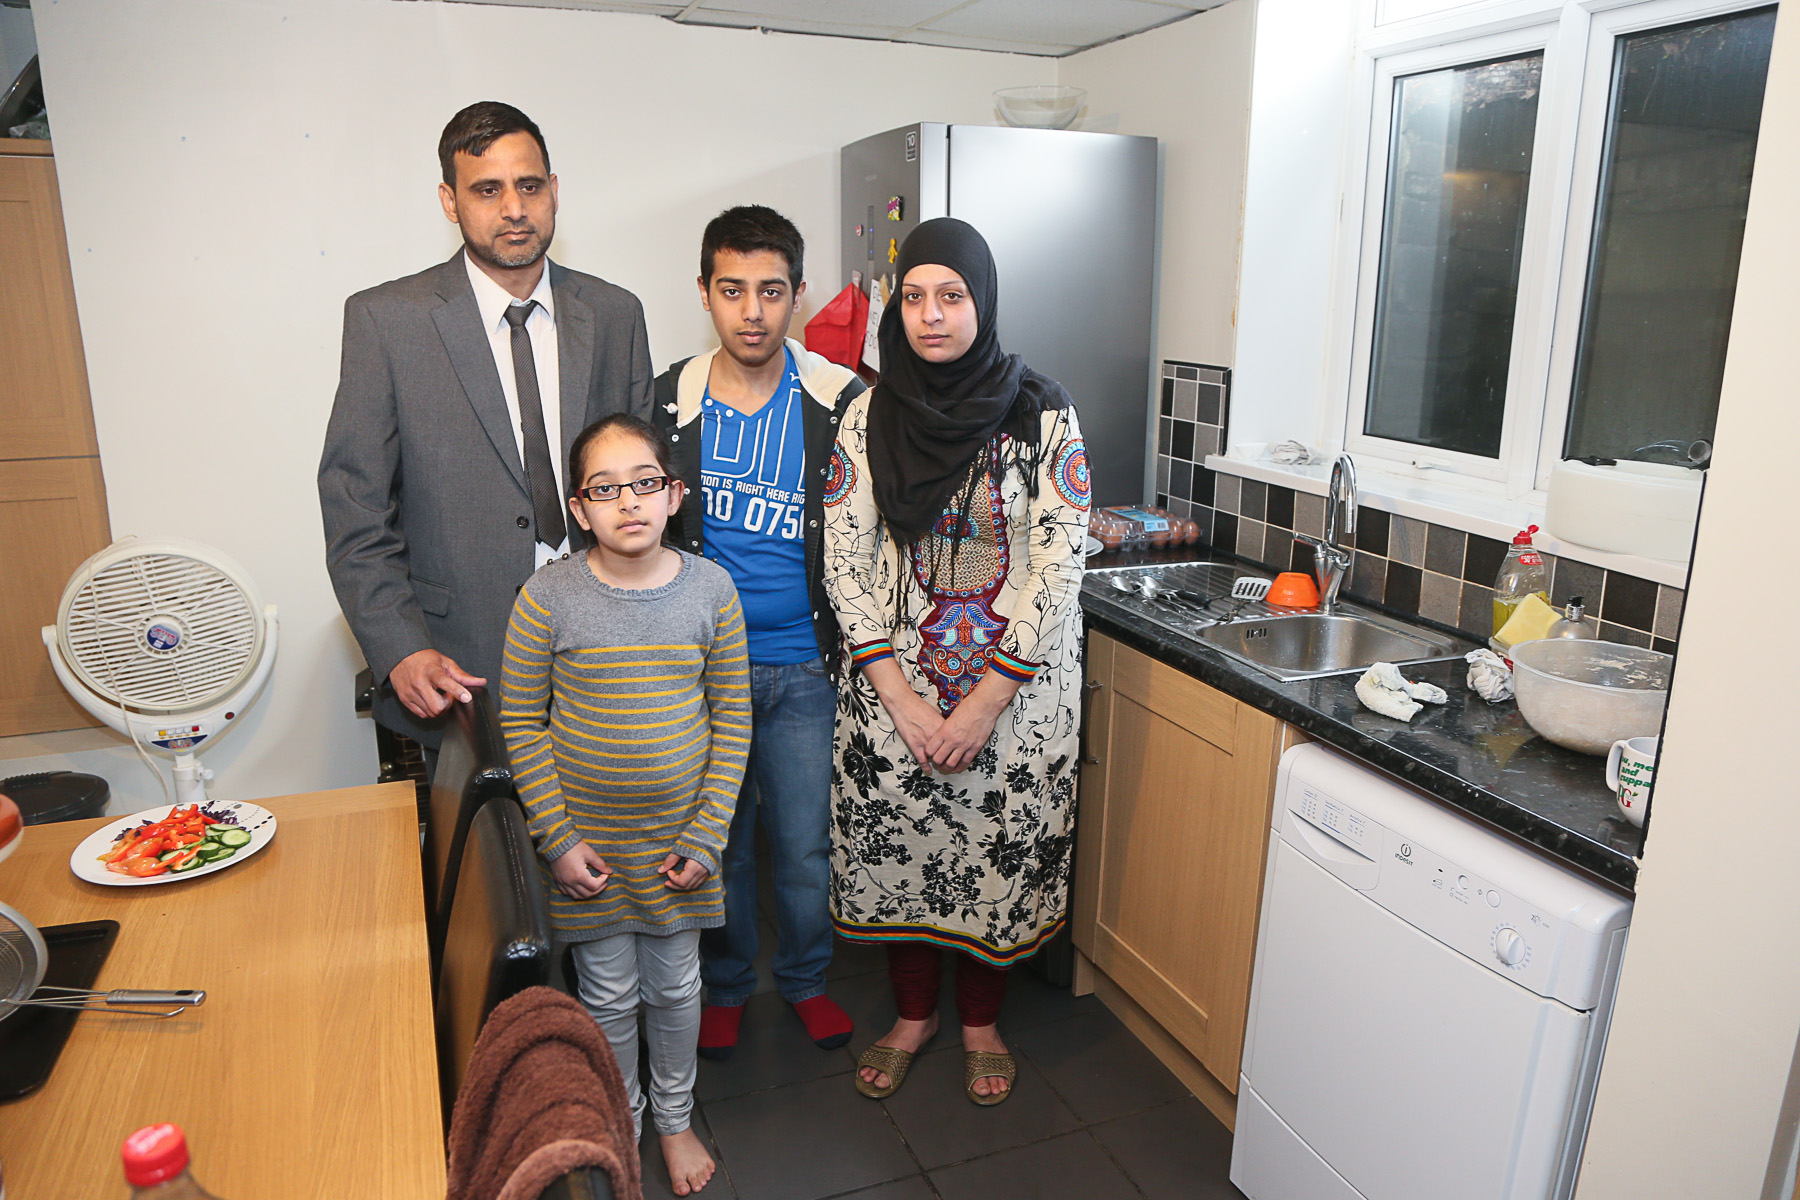 Councillor Khalid Choudhry, wife Shazia and children Qais and Husna in the kitchen of their Mannville Road home, which floods every time it rains